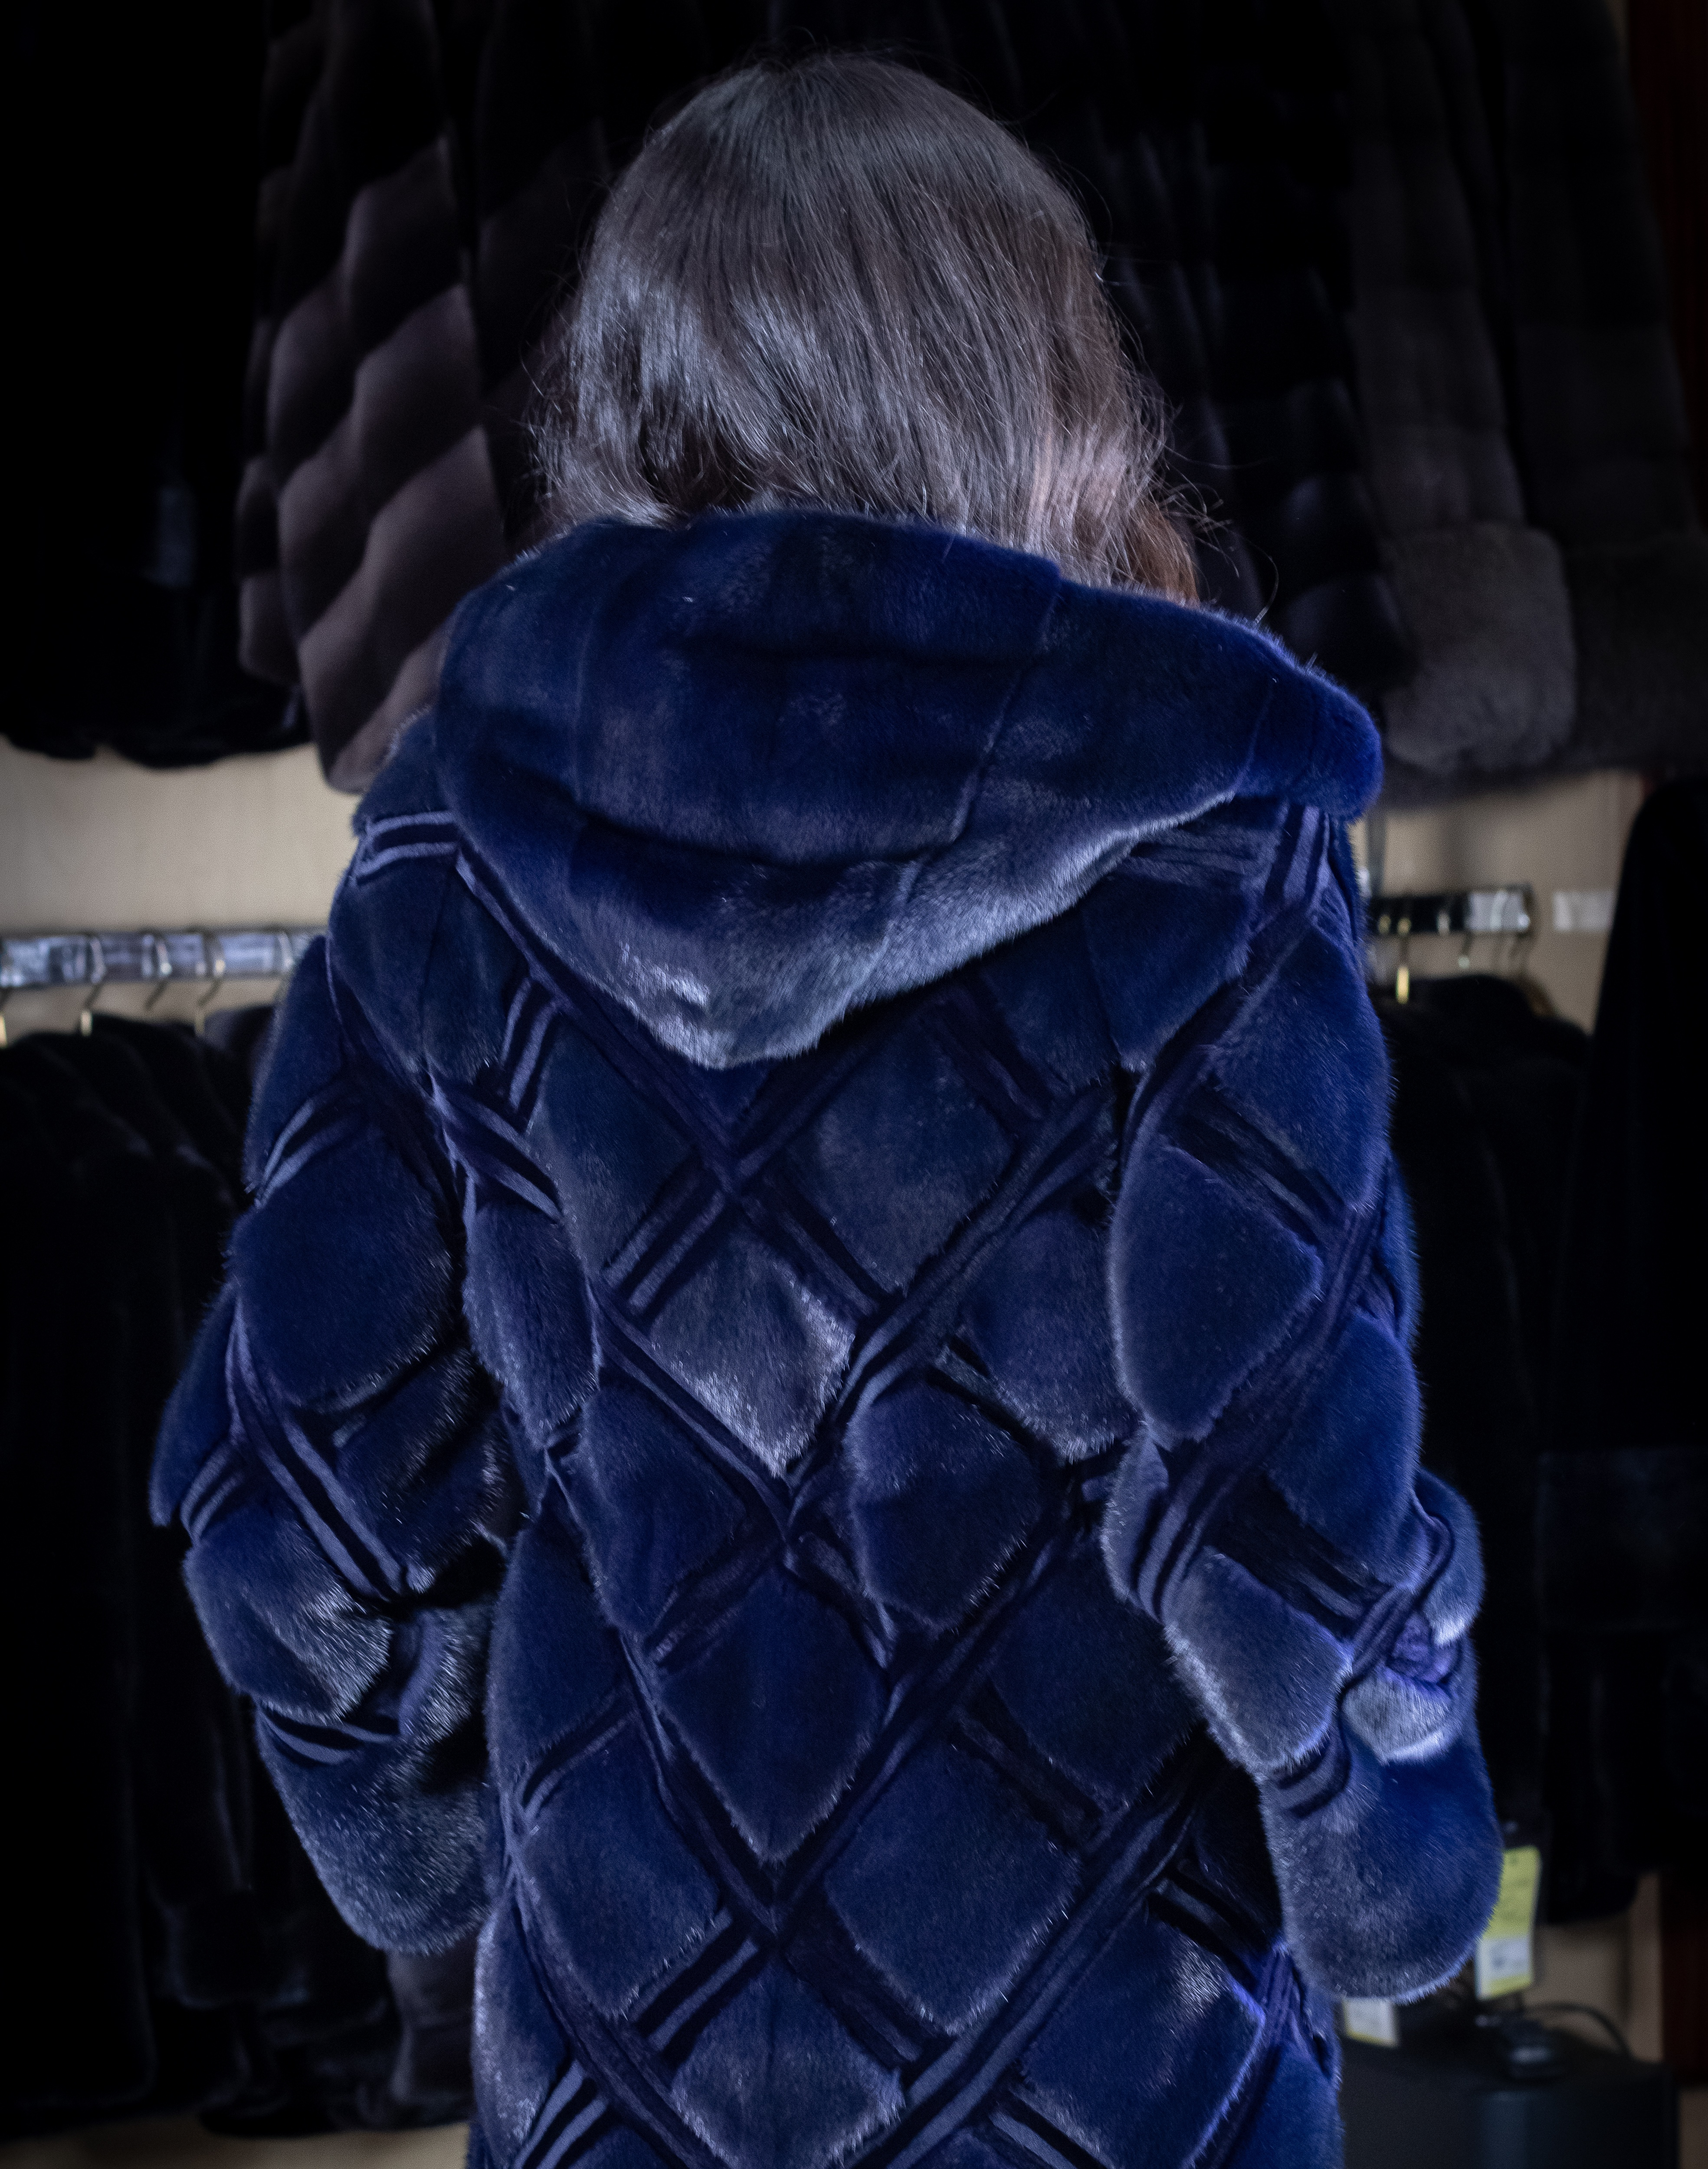 Dyed Mink Hooded Jacket with Criss-Cross Laser Cut Design